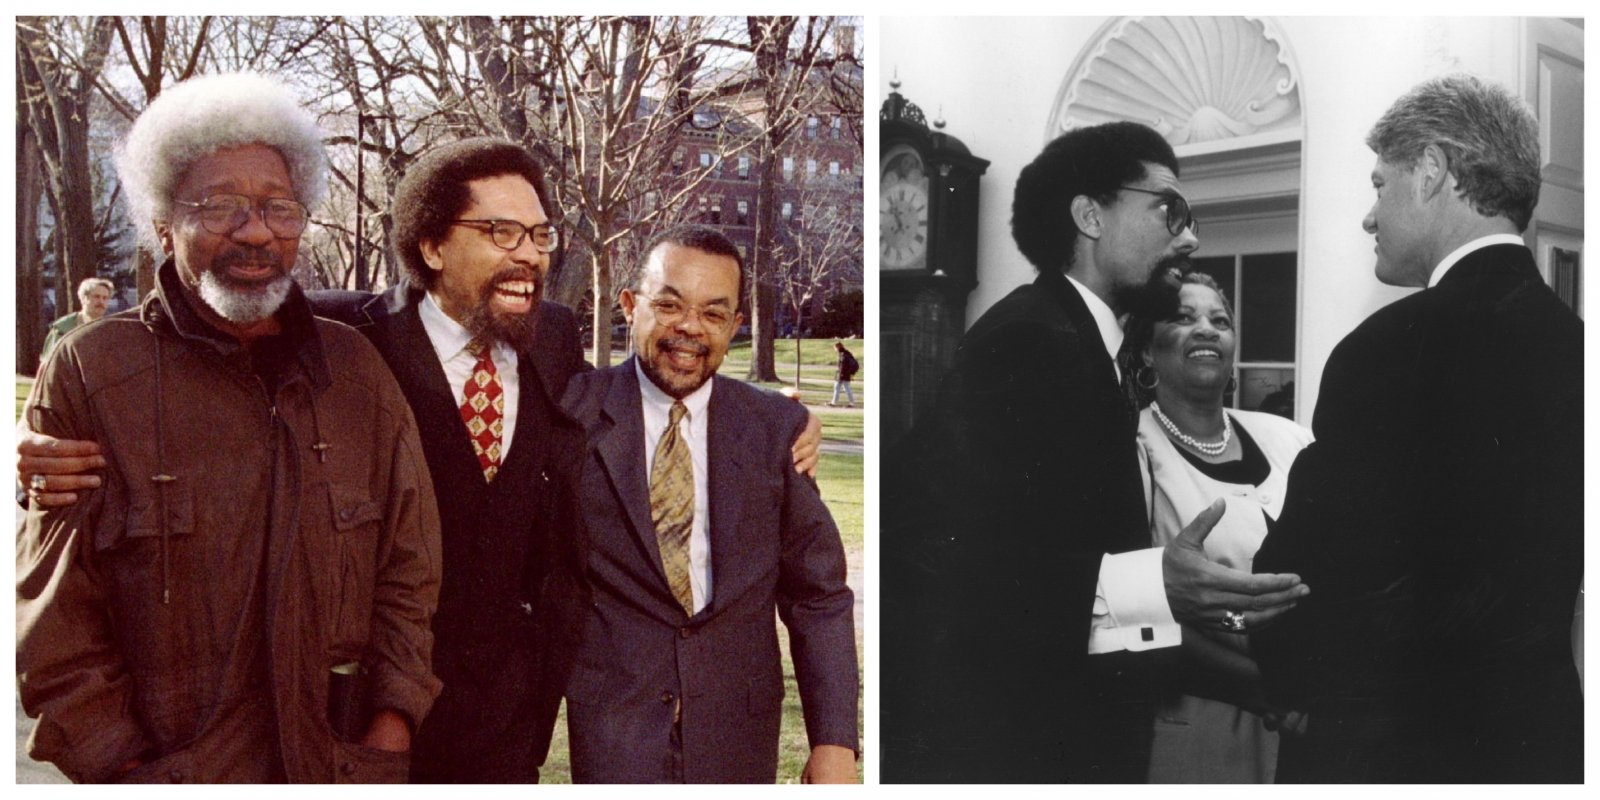 (Left) West with Nobel Prize-winning writer Wole Soyink(left) and Henry Louis Gates Jr. at Harvard in 1997; (right) with President Bill Clinton and Toni Morrison at the White House in 1993. (Gates by Brian Synder/Reuters. Clinton courtesy of the West family).